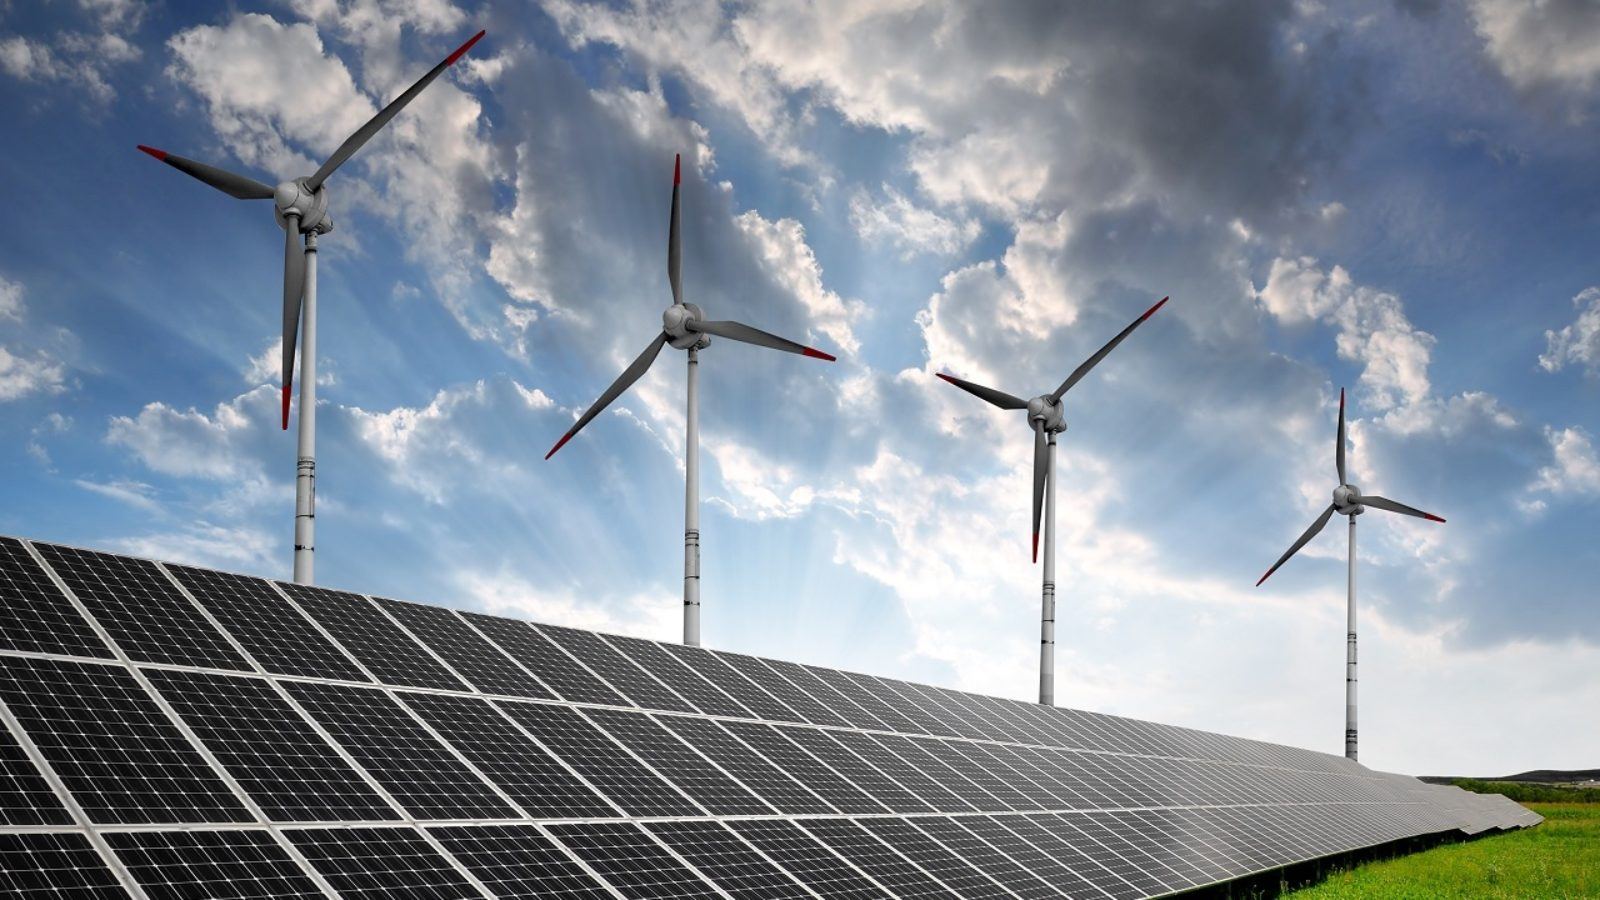 Renewable Energy and the UK: A new, half-day course to gain an understanding of the history and evolution of the UK renewable energy industry